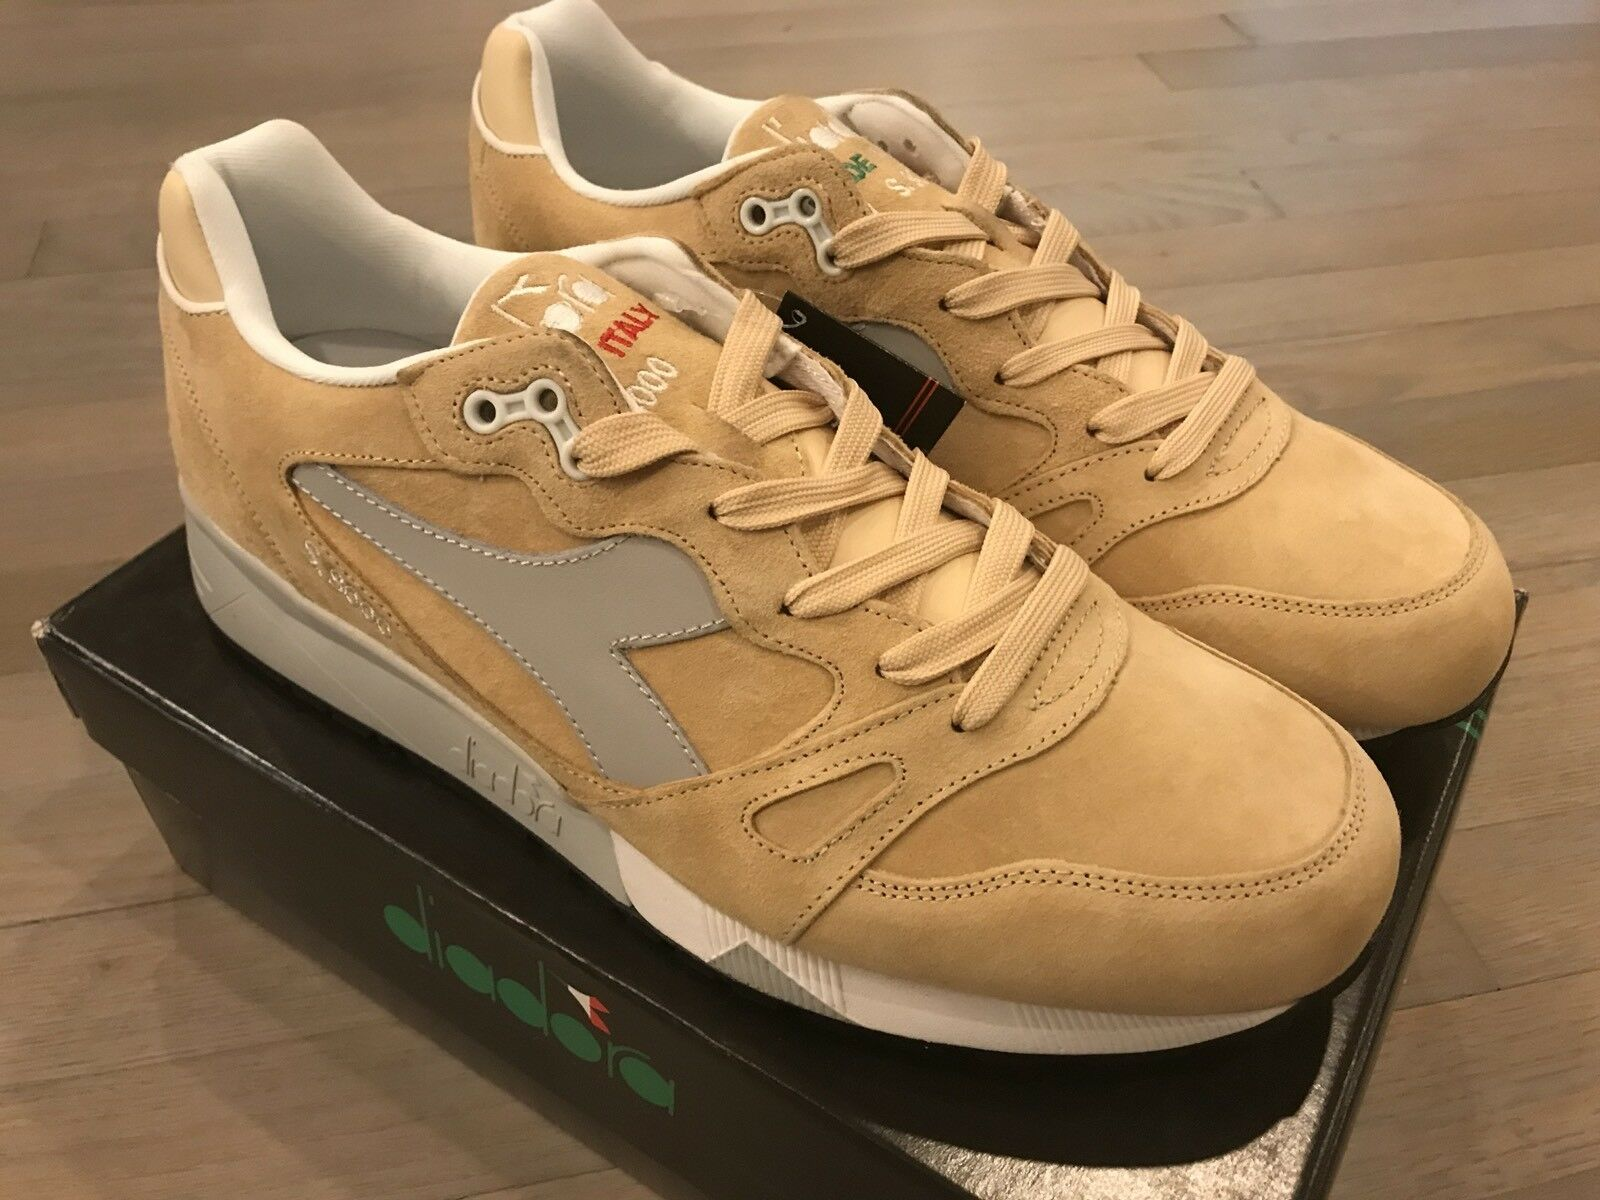 super popular 99944 a3d92 210  Diadora S8000 Beige Italia Size Size Size US 12.5 Made in Italy.  Deadstock